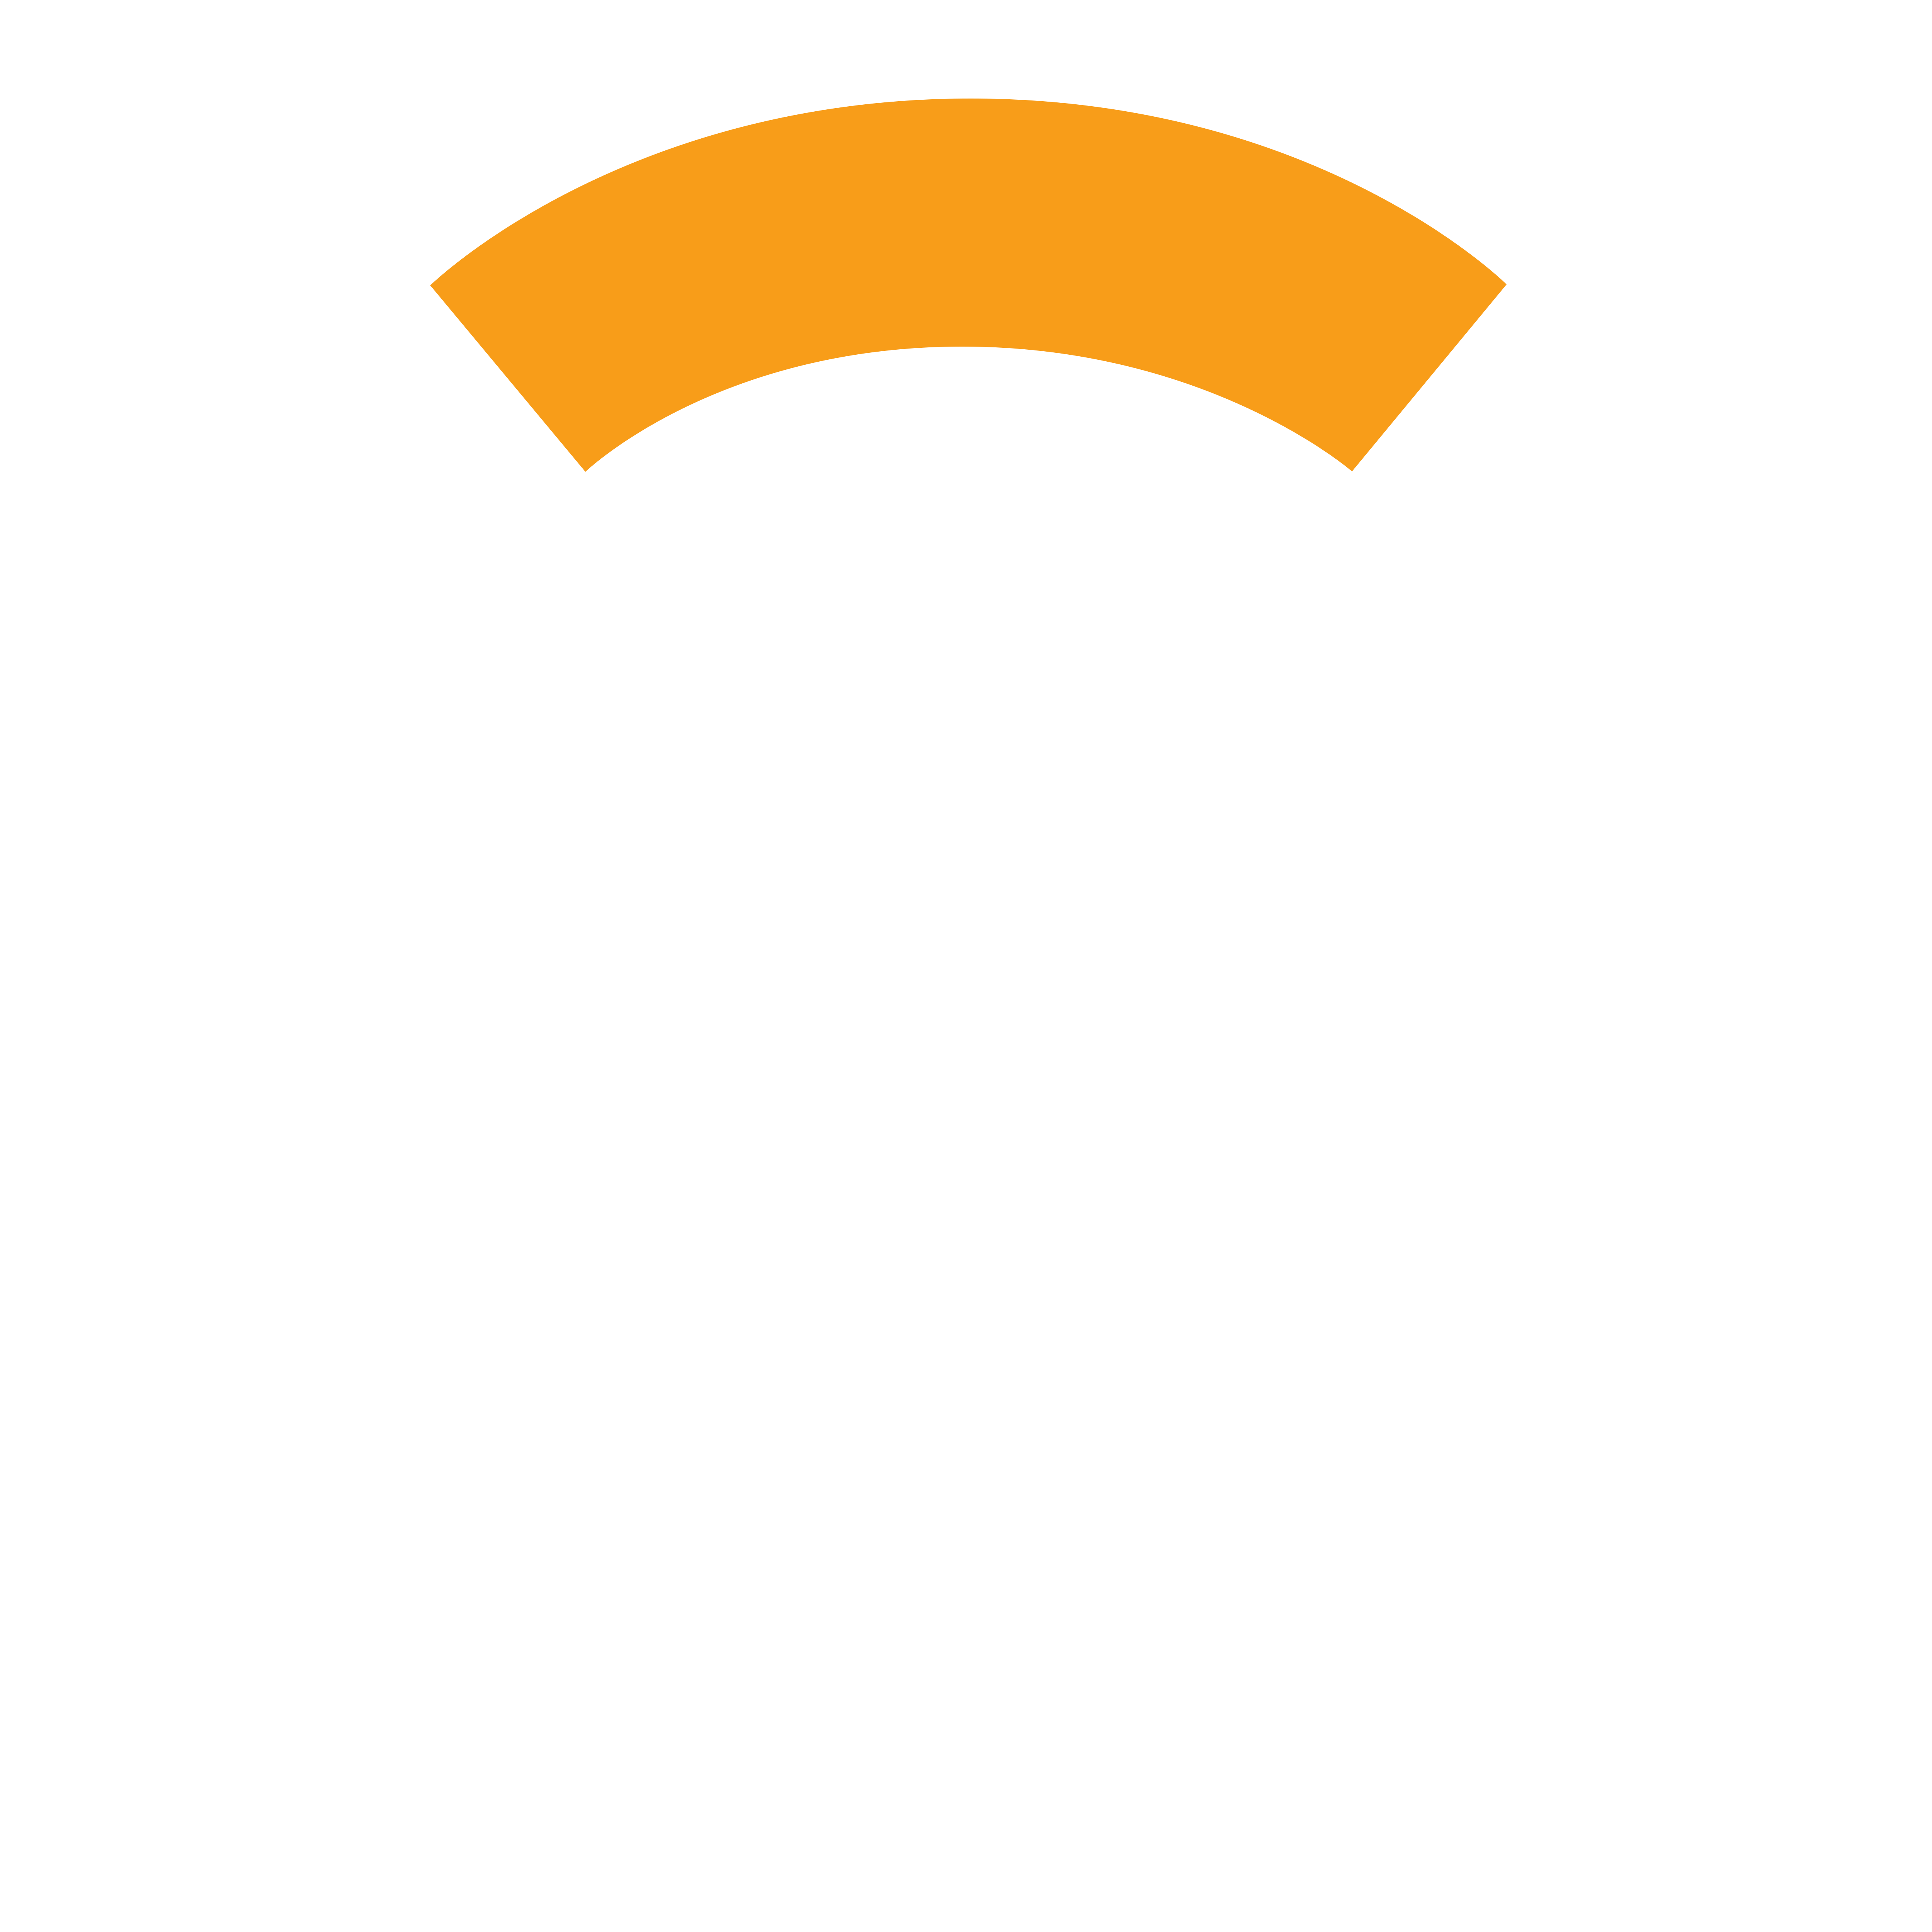 for free download. Overwatch symbol png